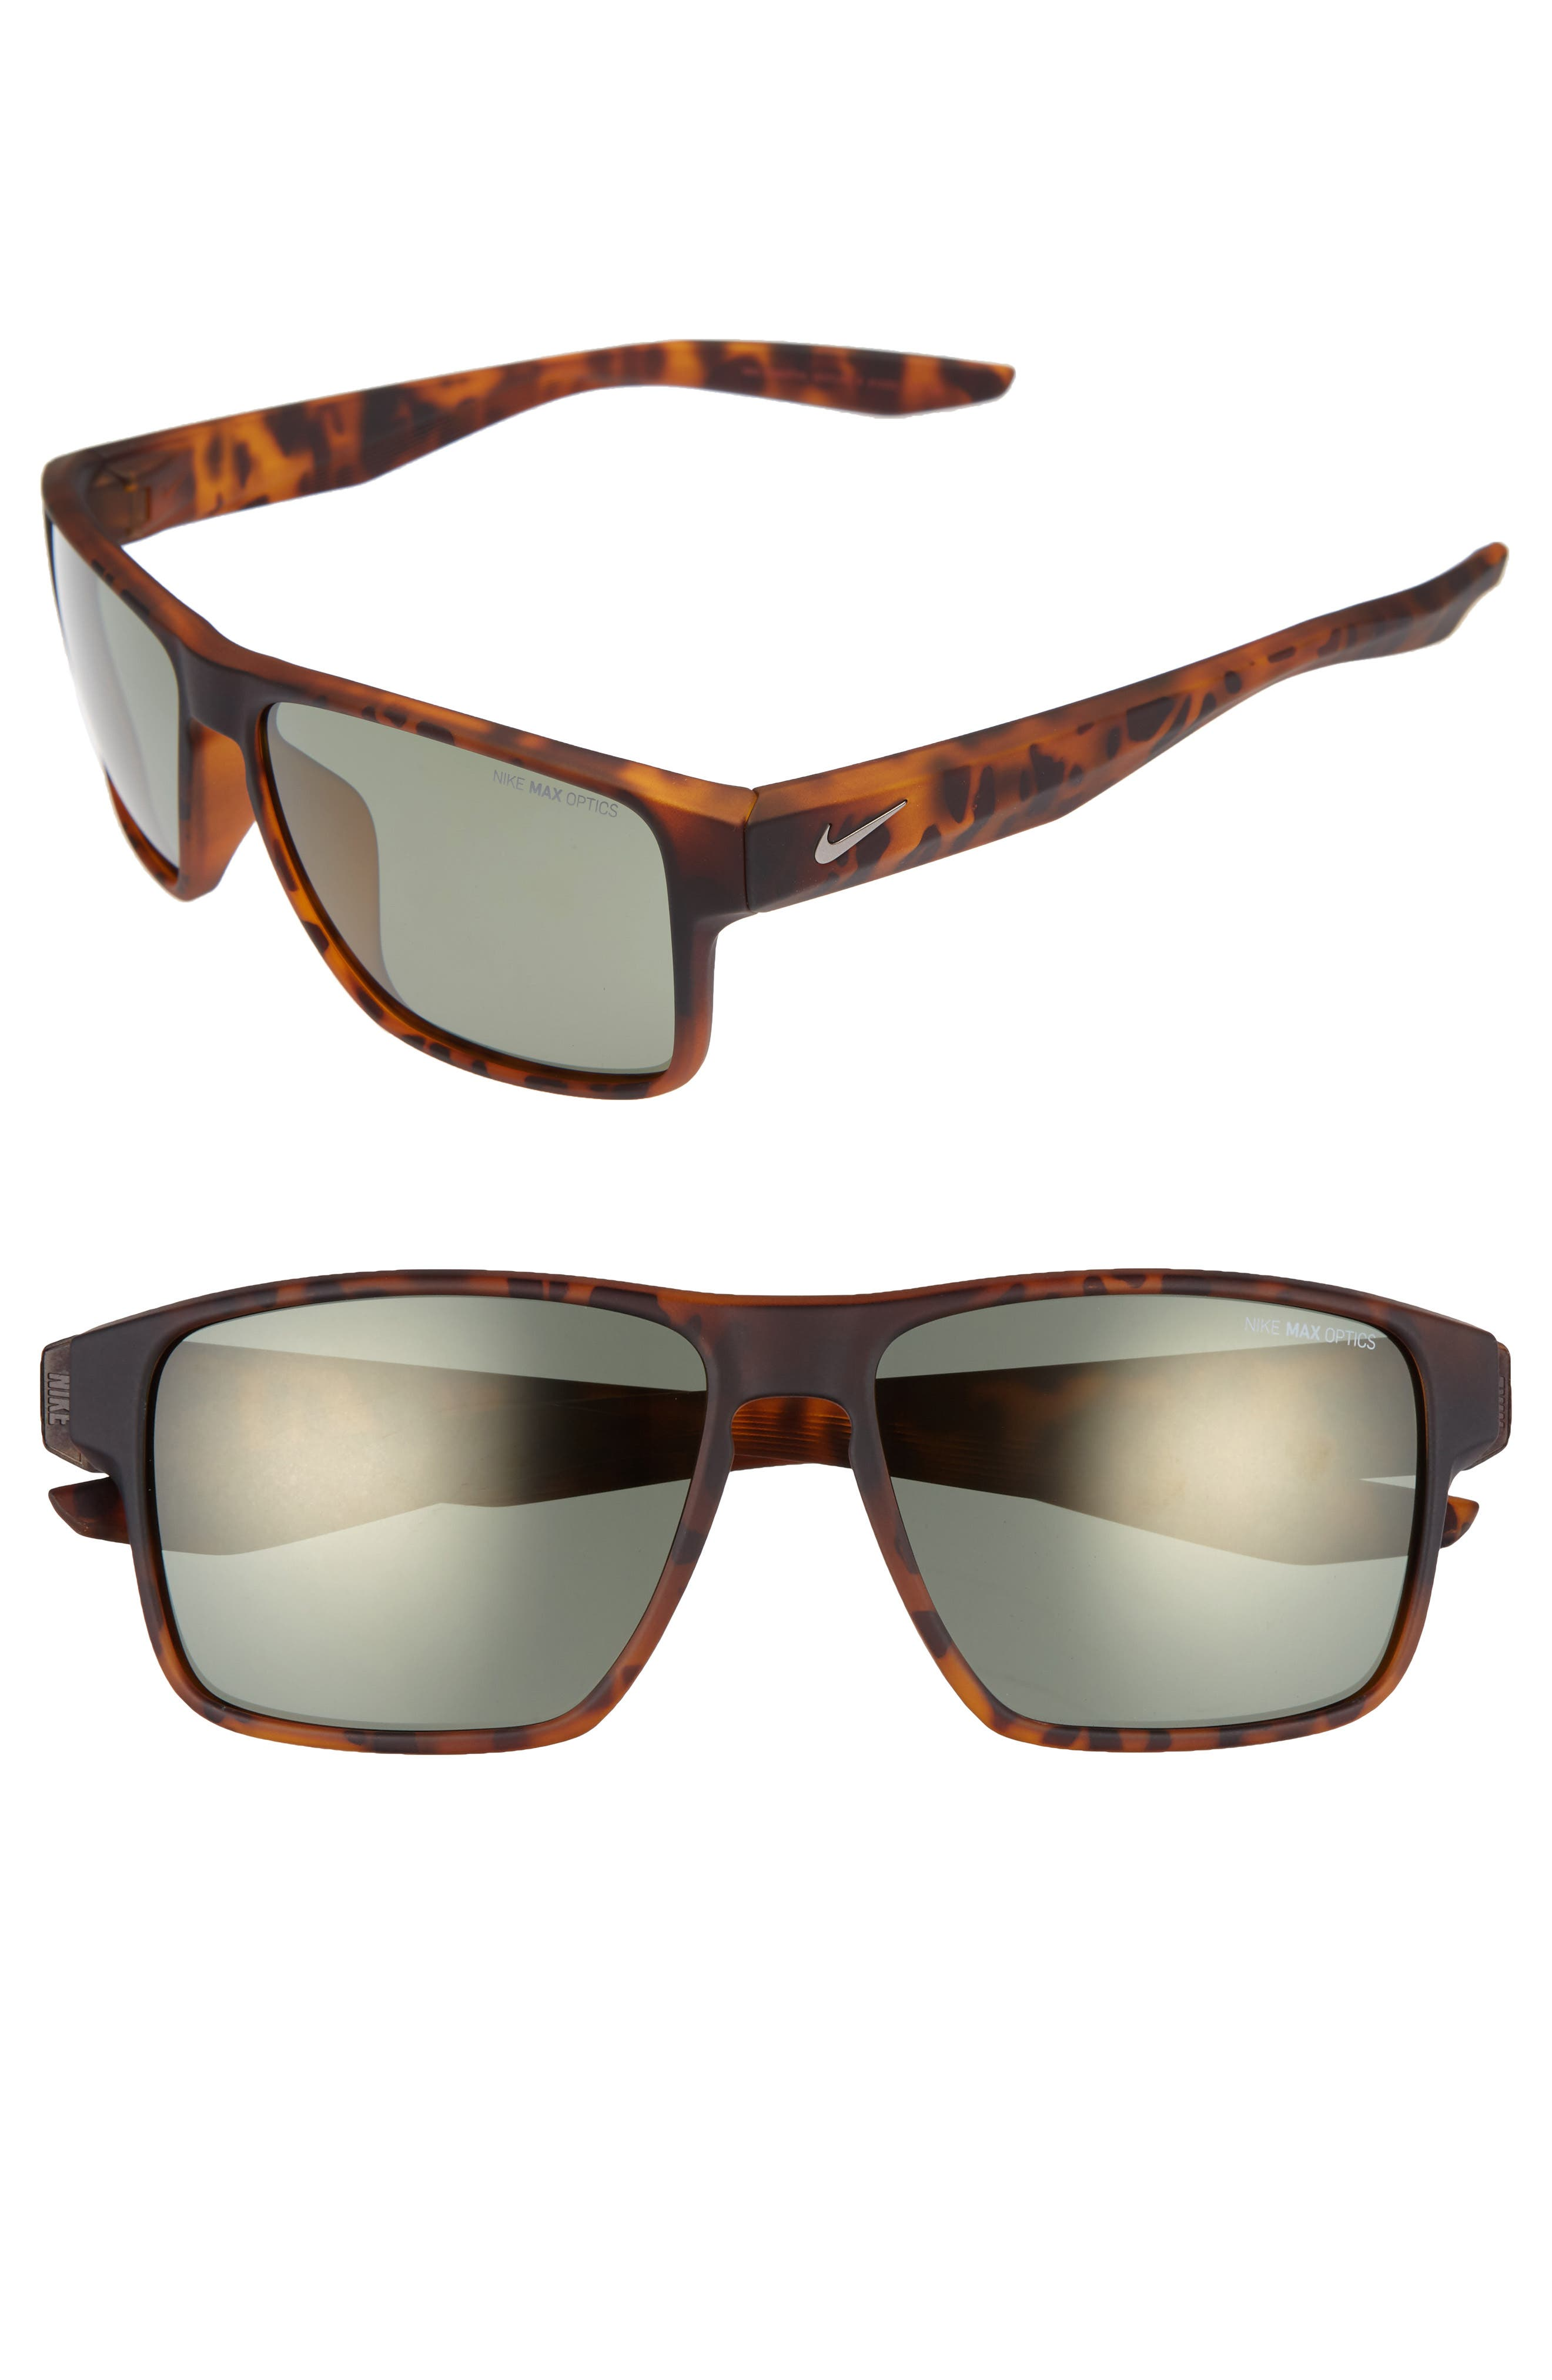 Essential Venture R 59mm Sunglasses,                         Main,                         color, MATTE TORTOISE